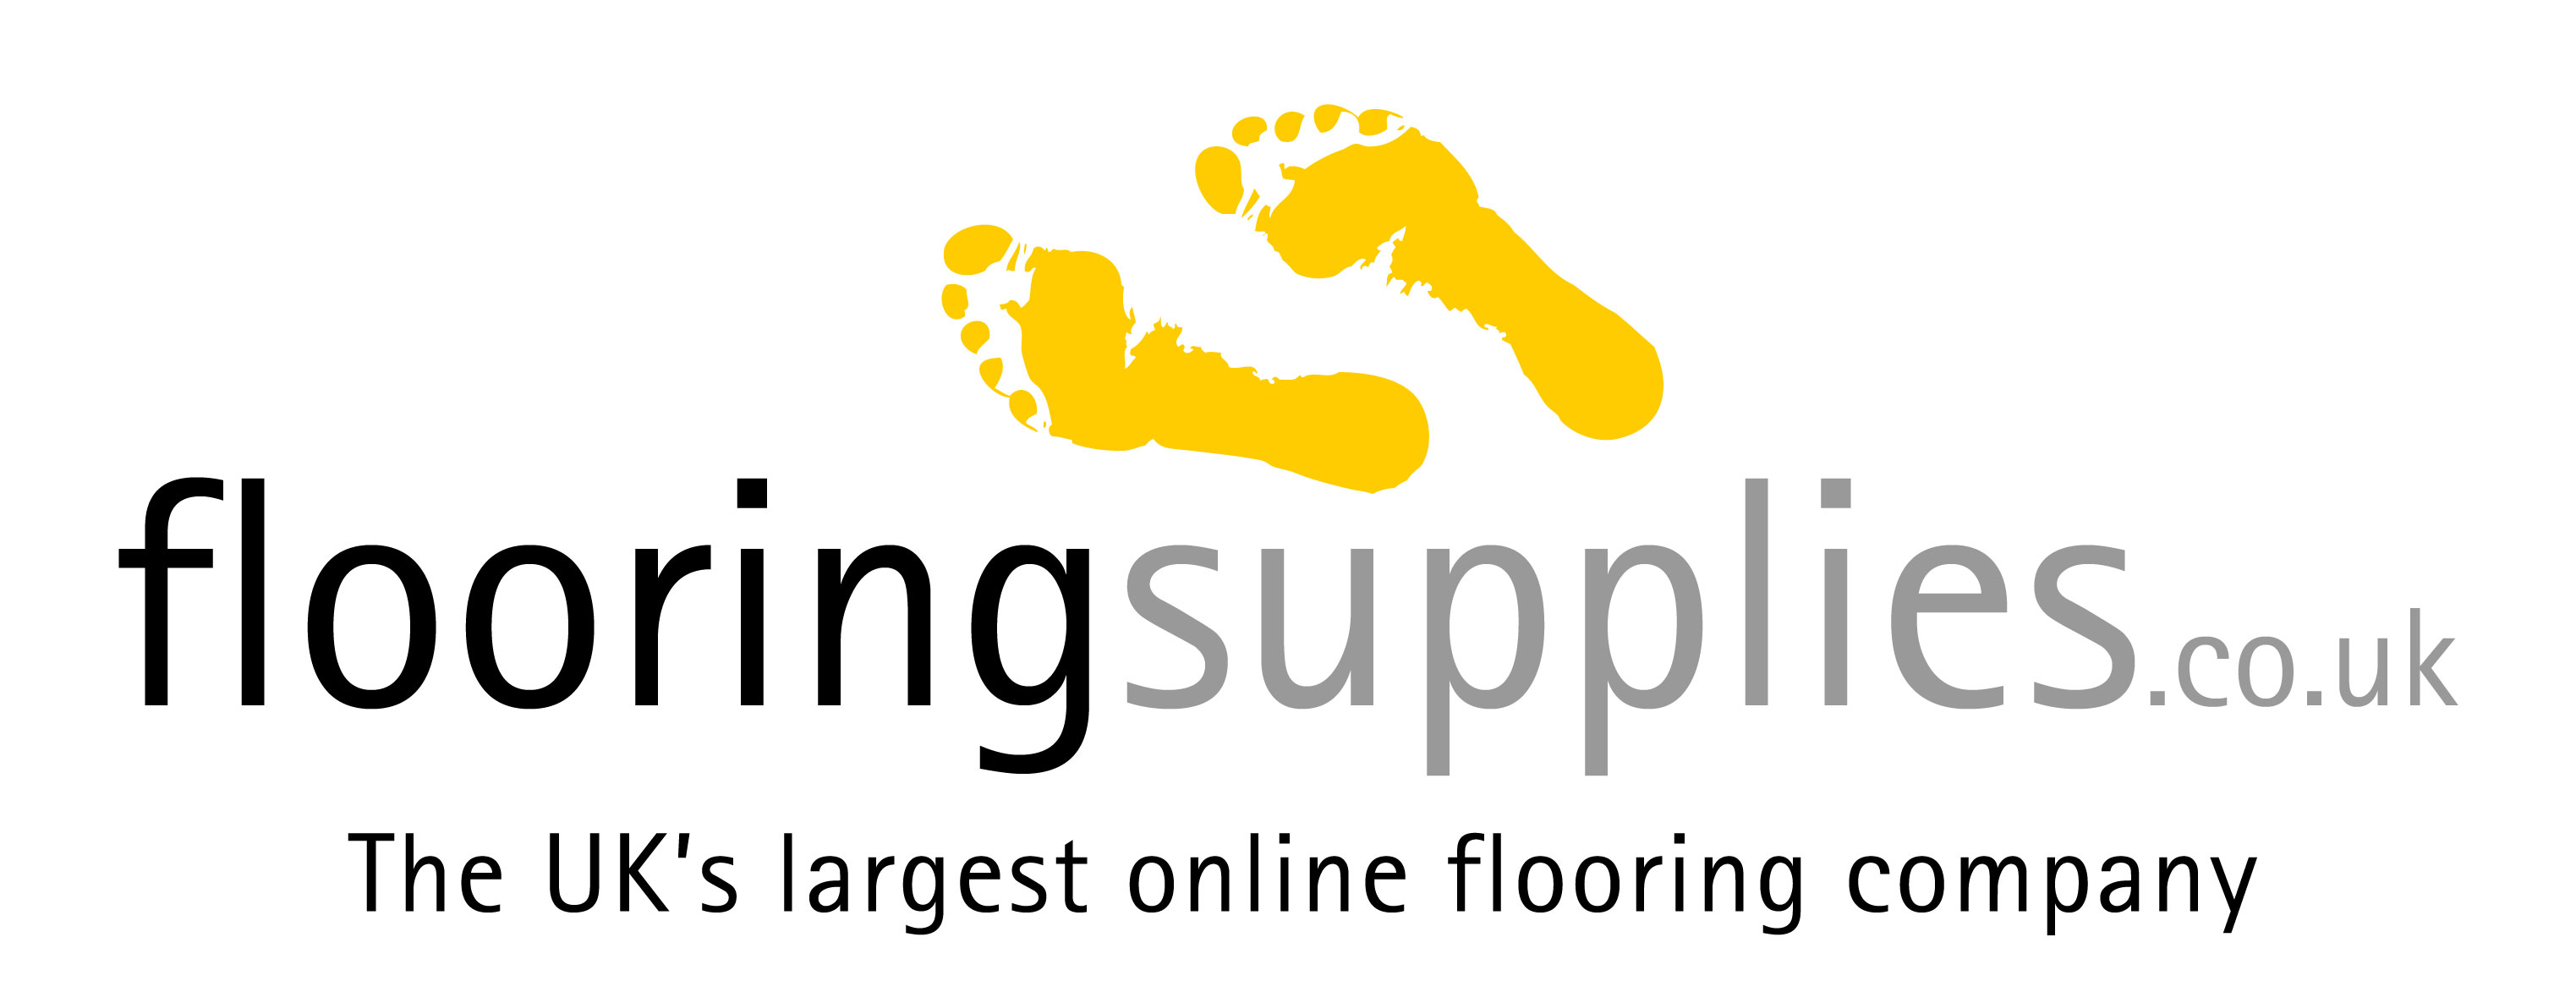 Flooring Supplies www.flooringsupplies.co.uk